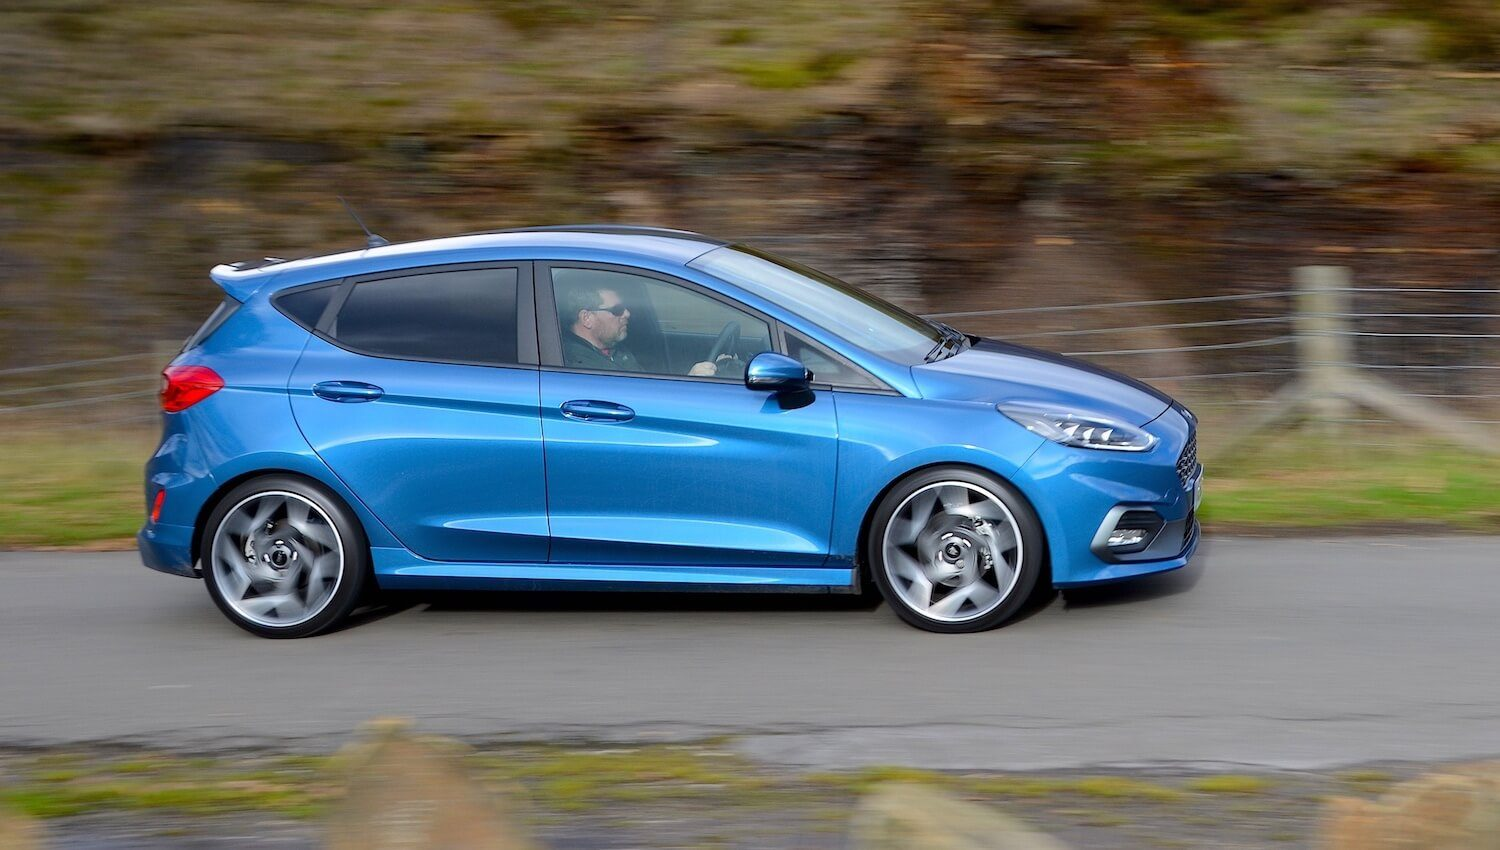 5 Door Car >> Ford Fiesta St 2 5 Door Review Greencarguide Co Uk